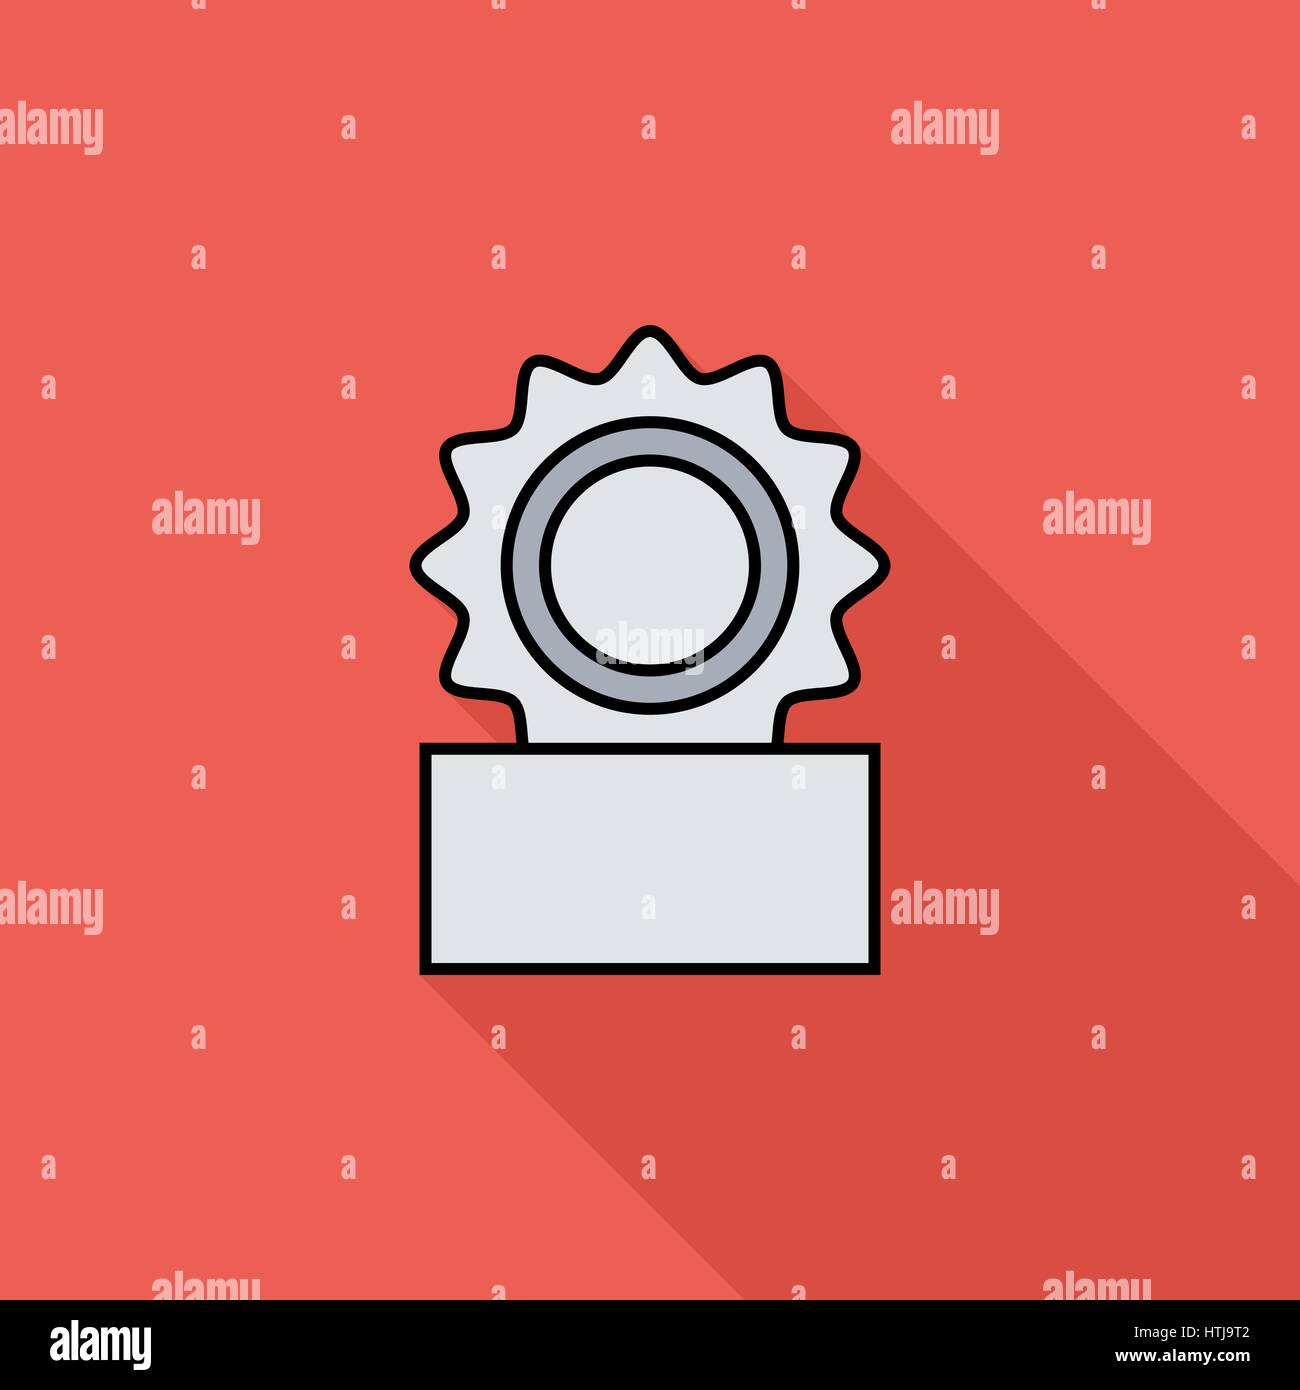 Canned icon. Flat vector related icon with long shadow for web and mobile applications. It can be used as - logo, - Stock Vector